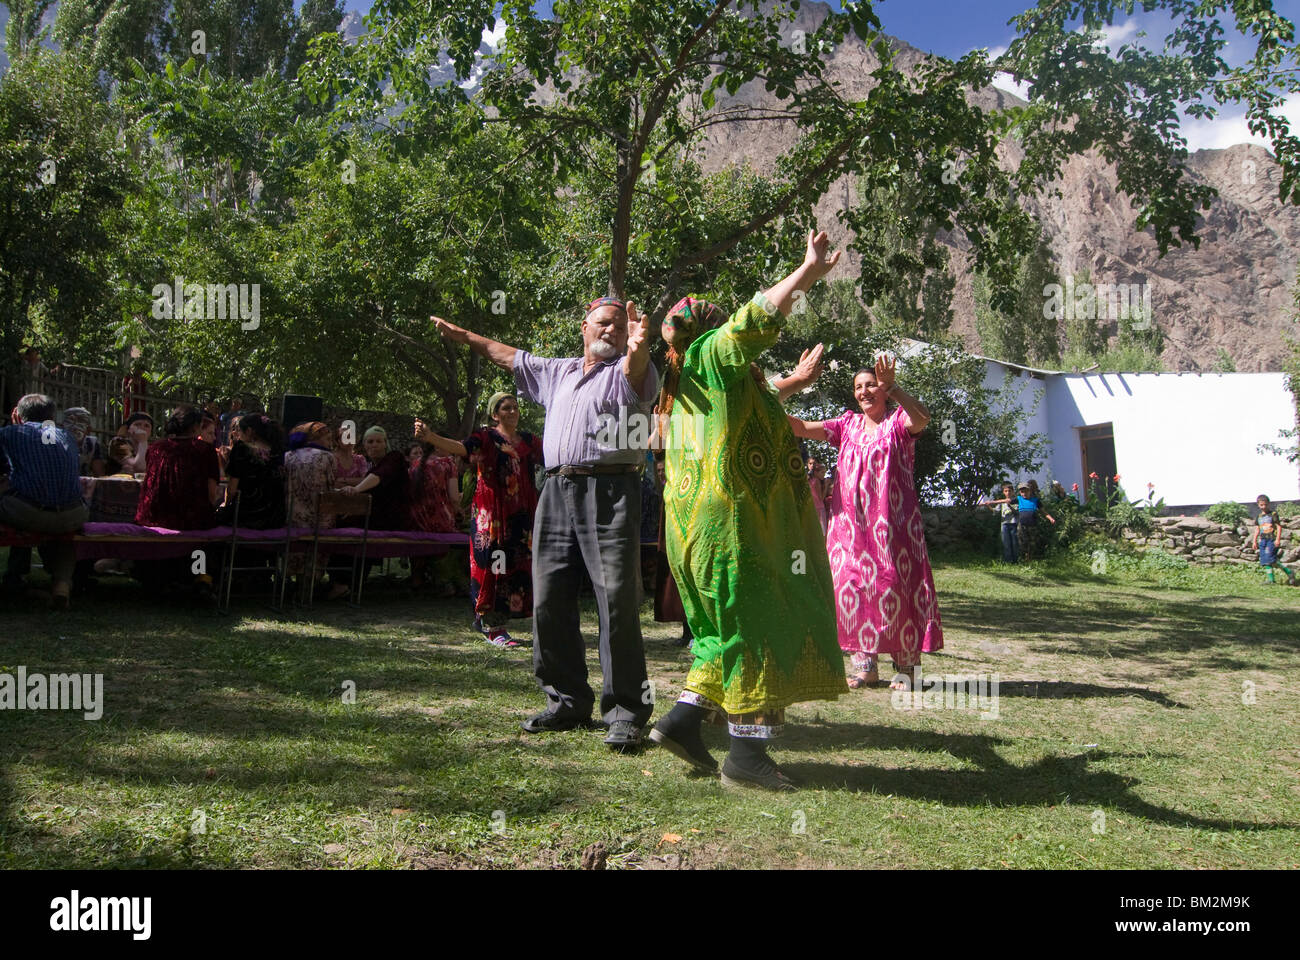 People dance at a traditional Pamiri wedding, Bartang valley, Tajikistan Stock Photo